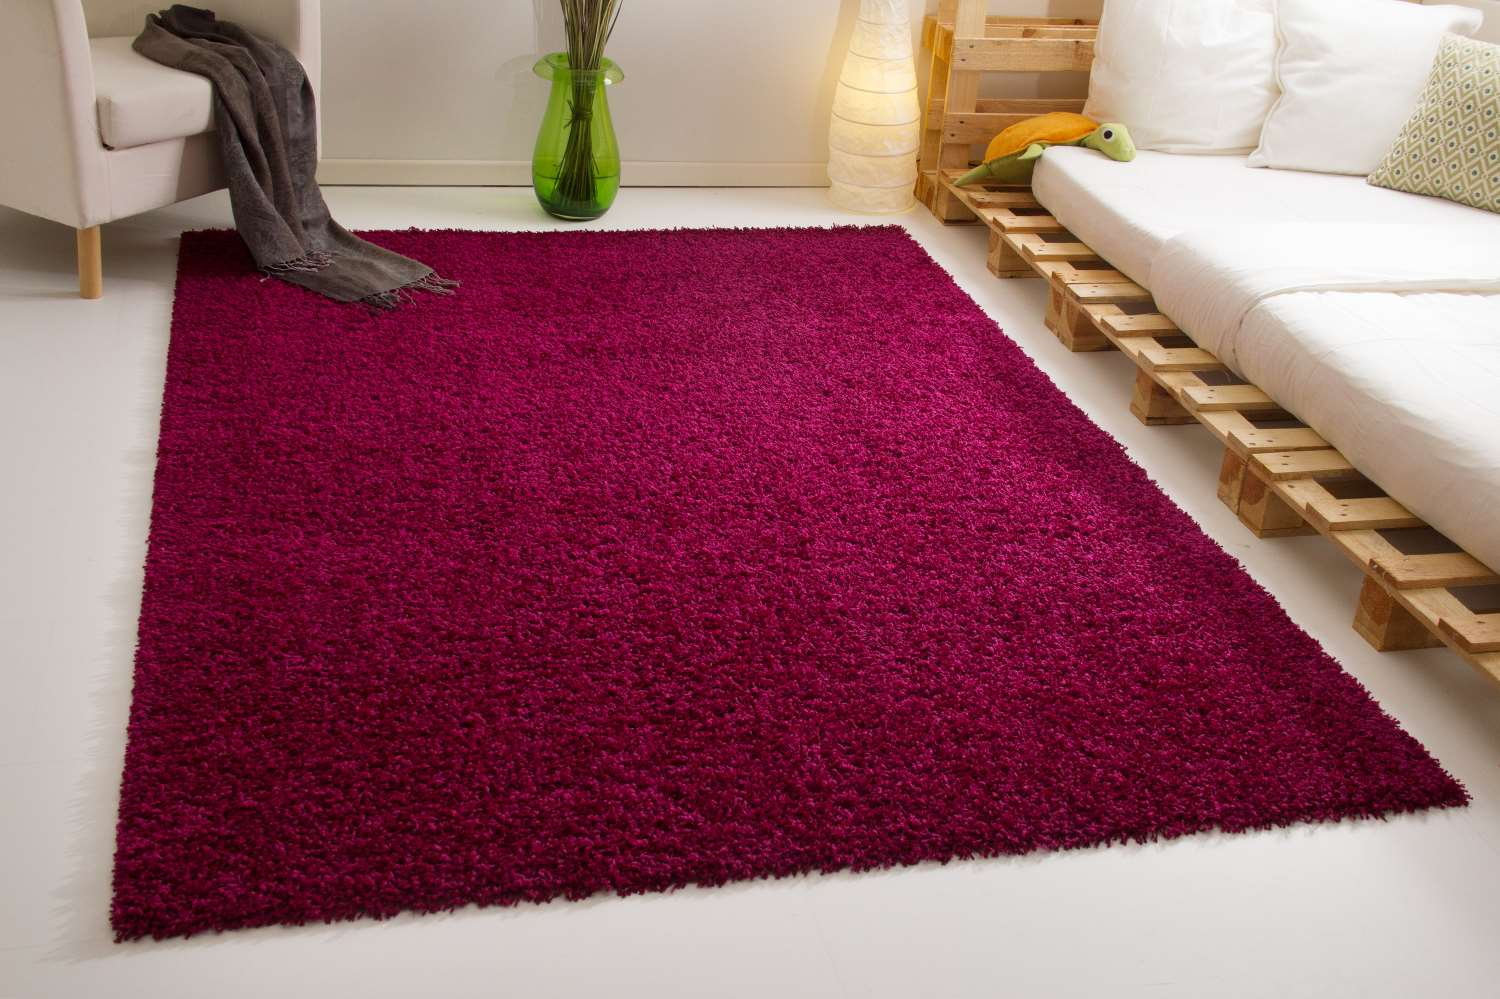 Teppich Hochflor Rosa Hochflor Teppich Next Funny Global Carpet